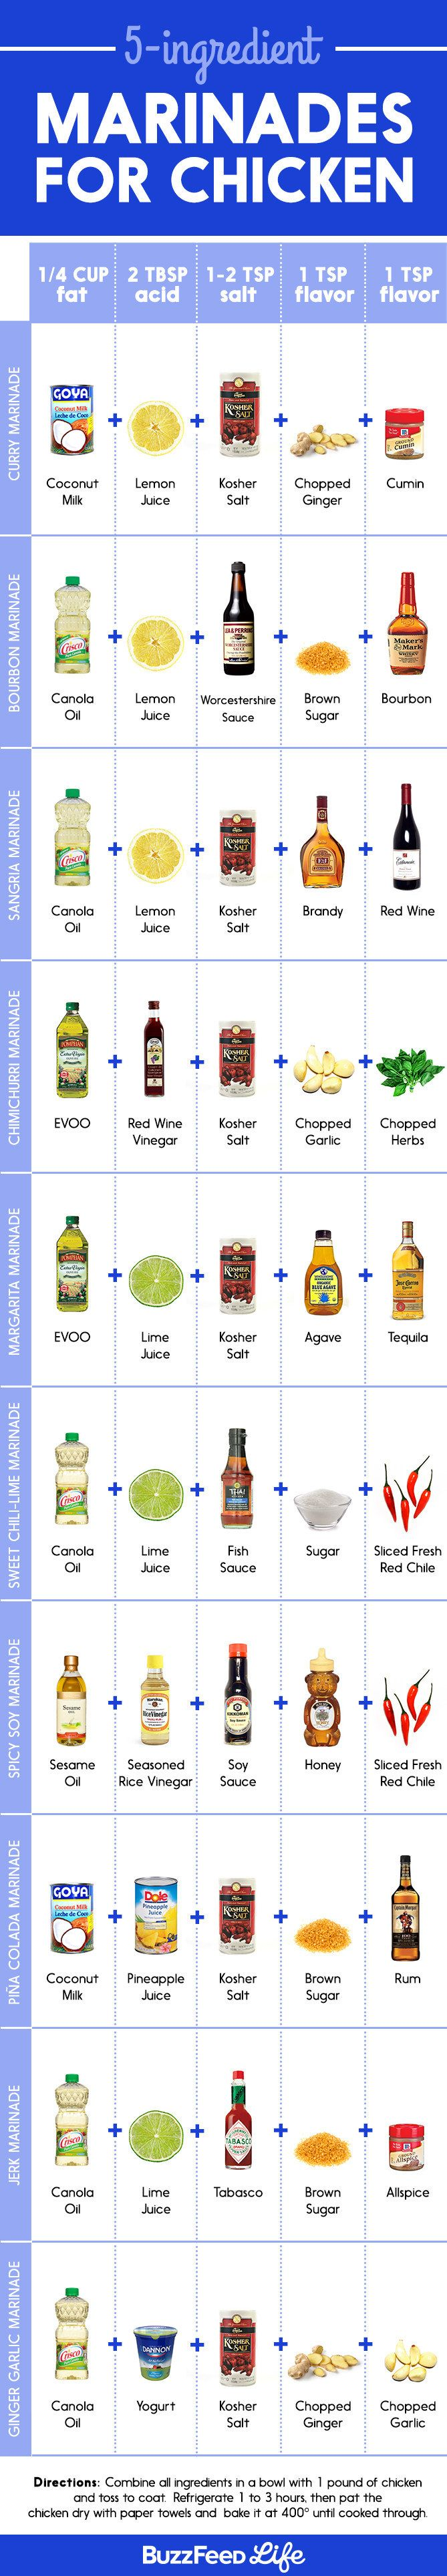 5 and 3 ingredient chicken marinades. Easy gluten free and dairy free.